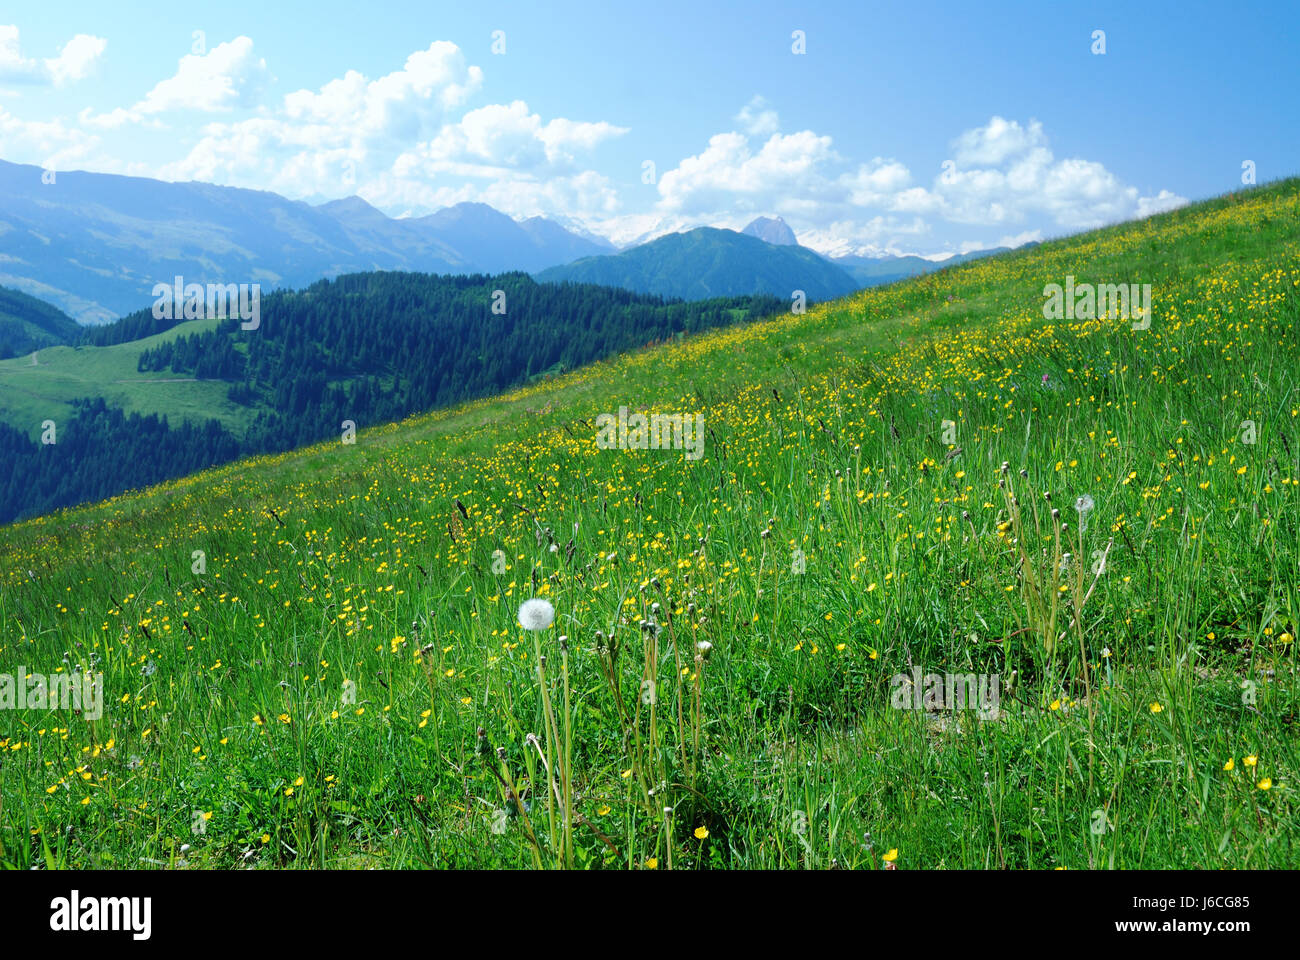 hill austria idyll high country mountain scenery countryside nature meadow - Stock Image